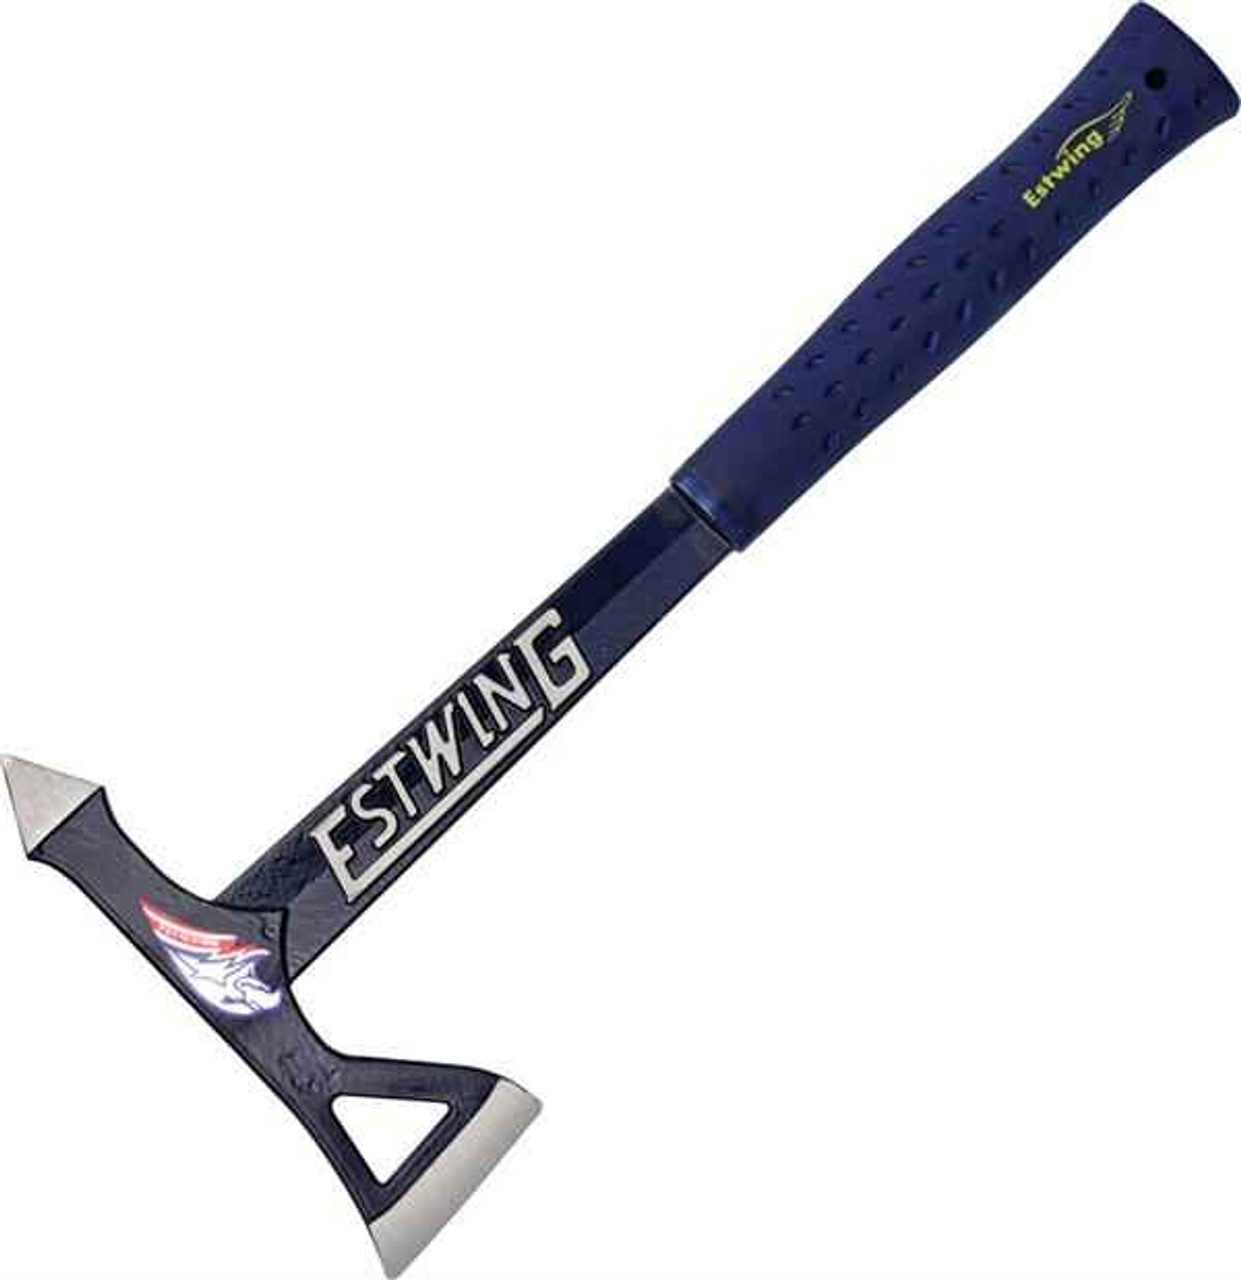 "Estwing Black Eagle Blue Tomahawk Axe, 15 1/2"" Overall Length"